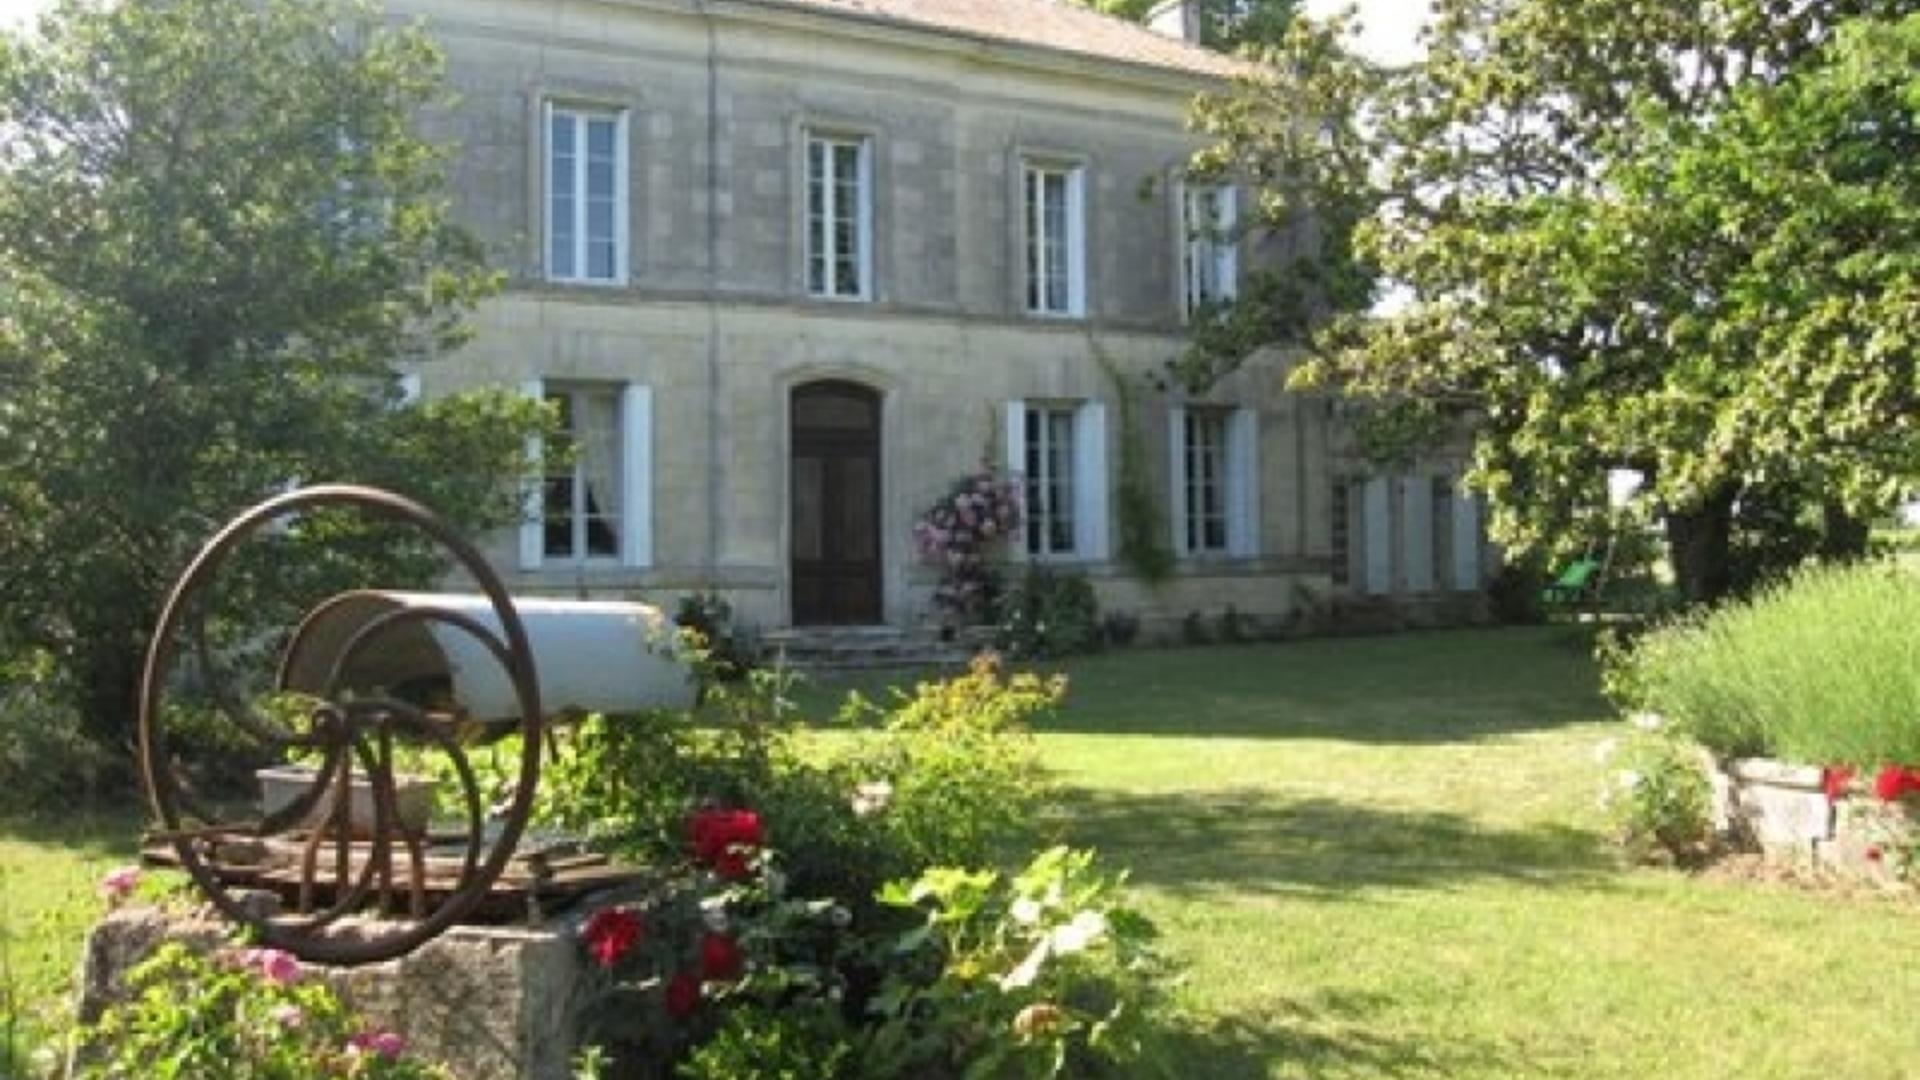 8 Bedroom  in Poitou-Charentes, France